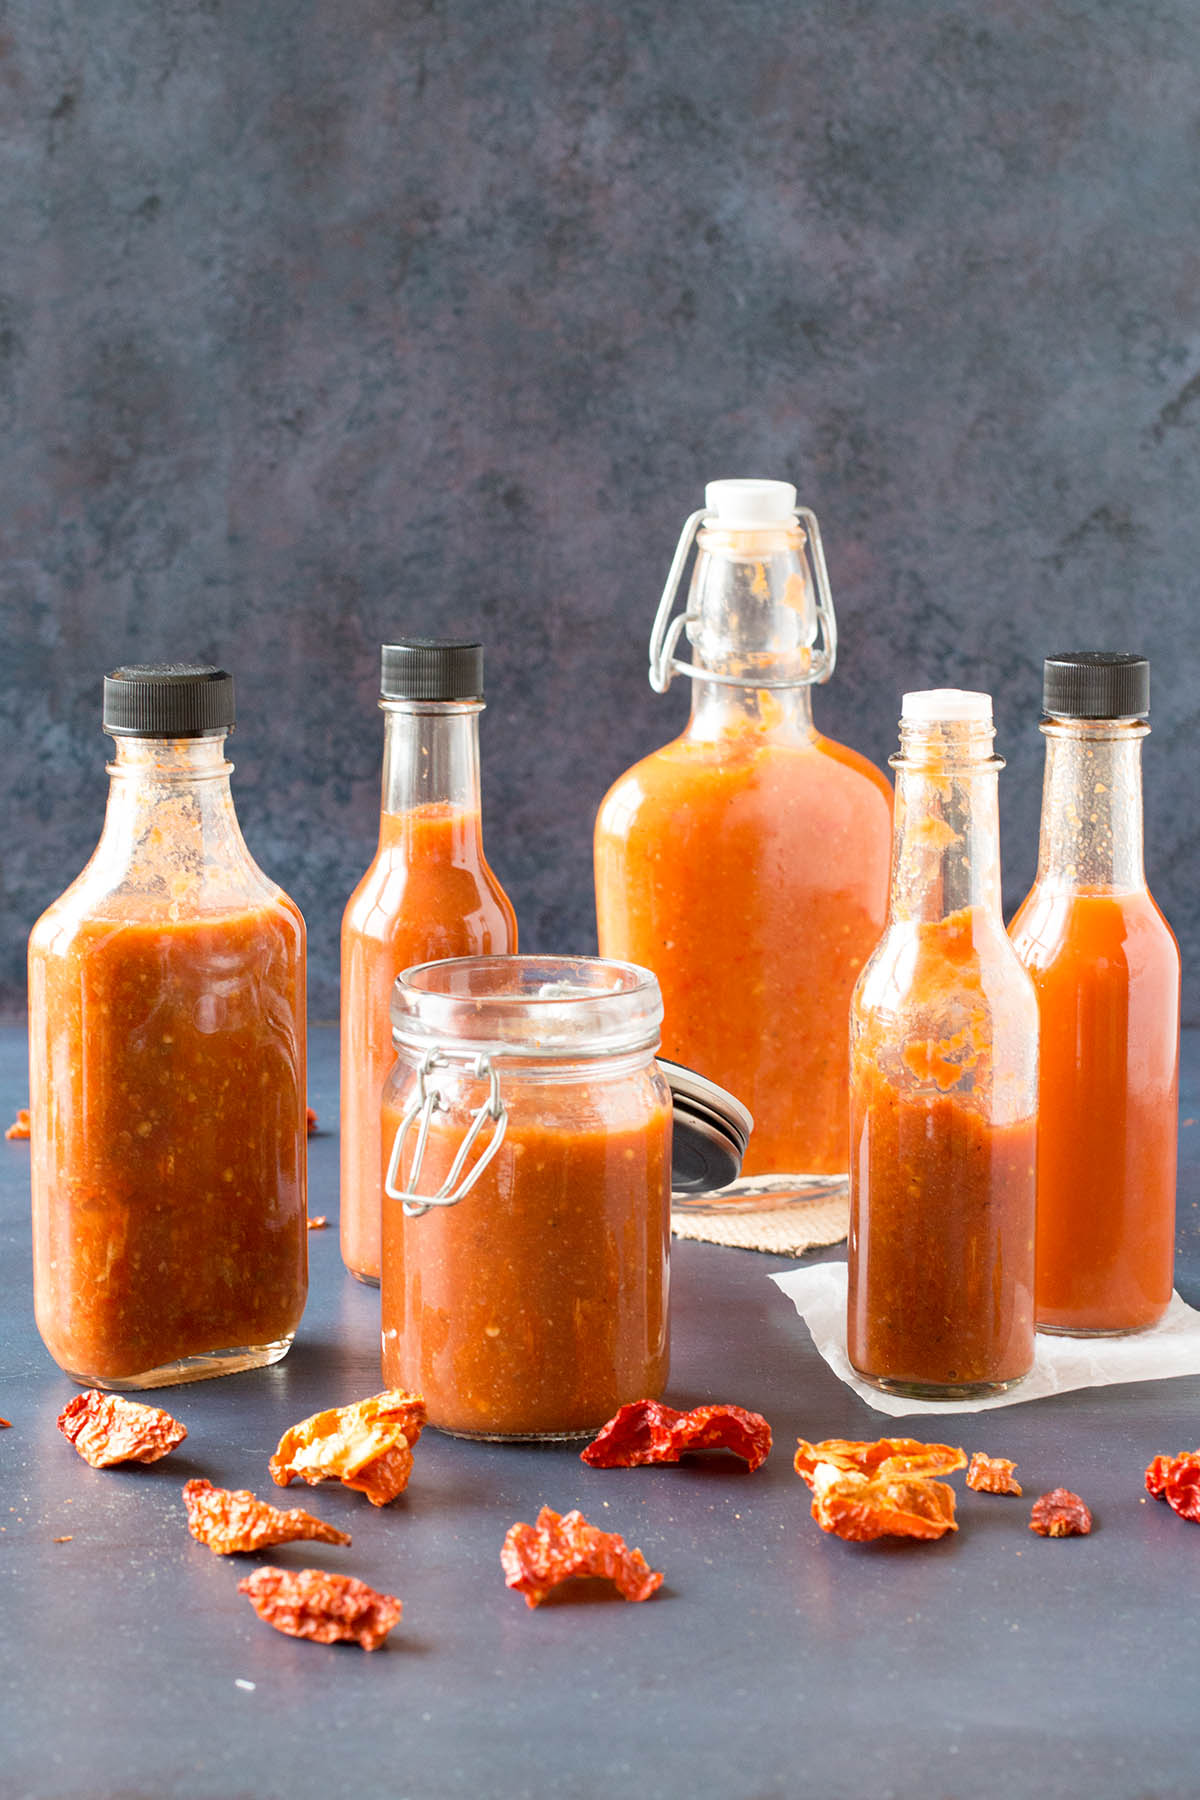 Homemade Louisiana Hot Sauce - Recipe